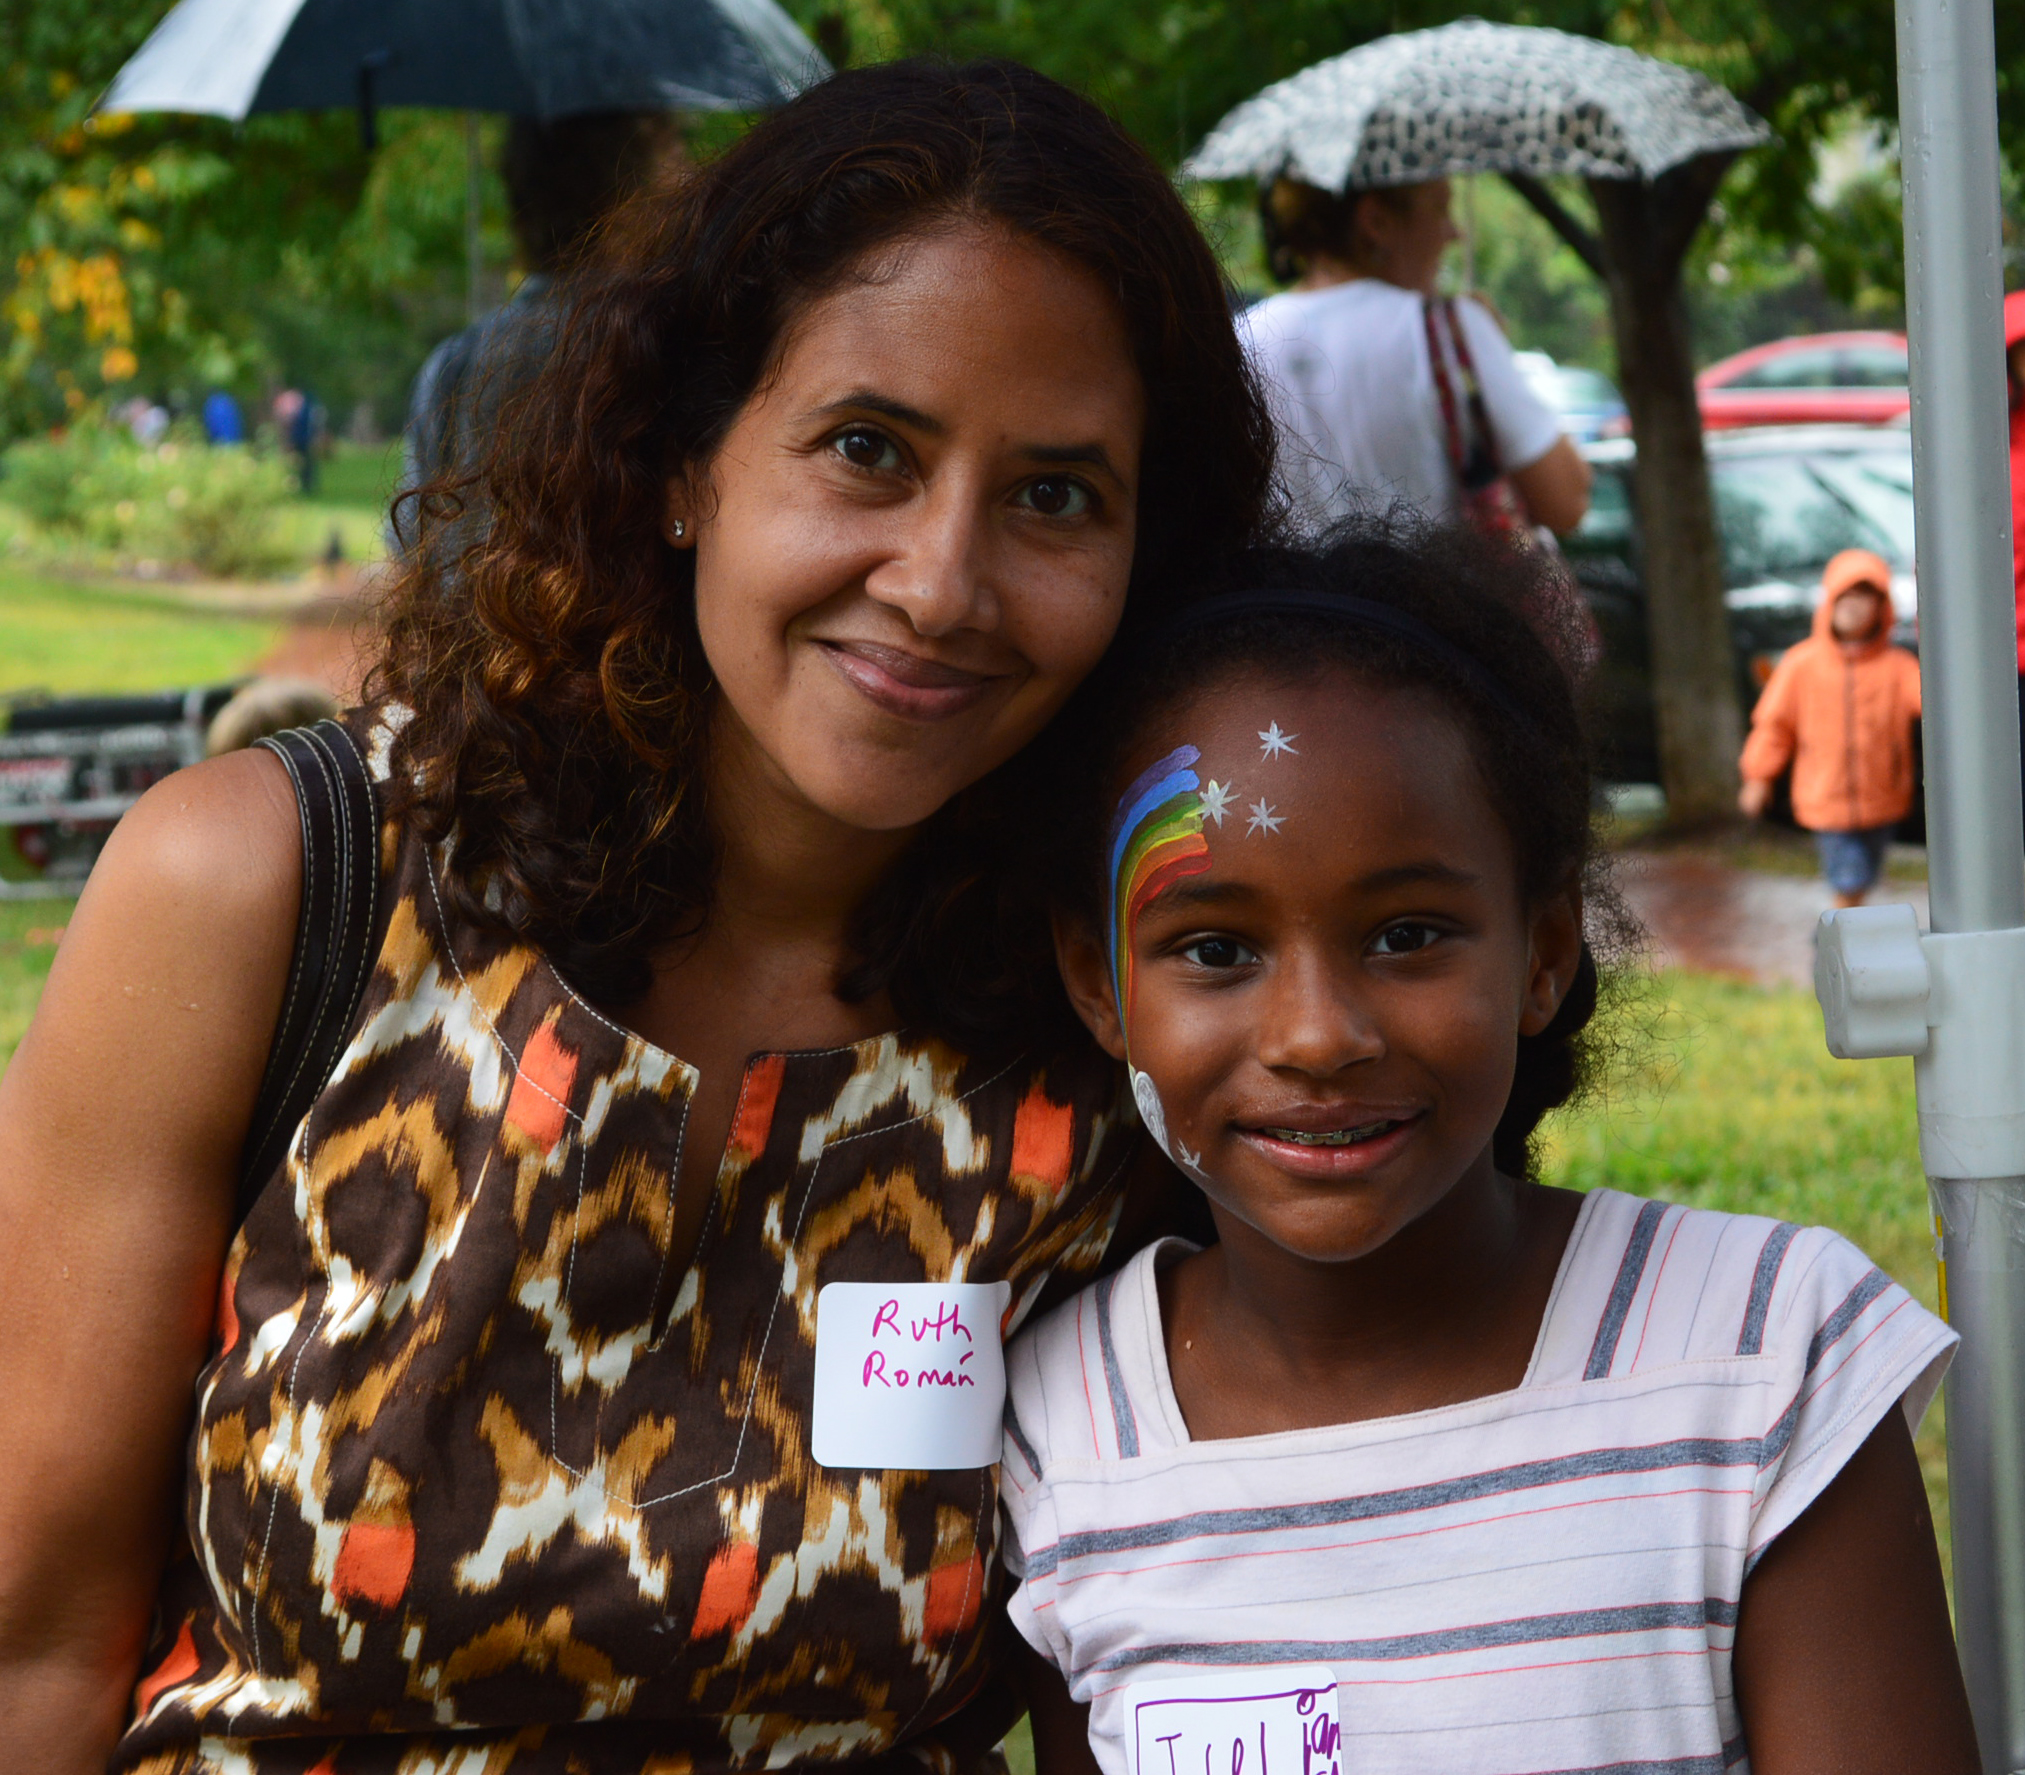 Mother and daughter smiling at the Back to School Picnic.